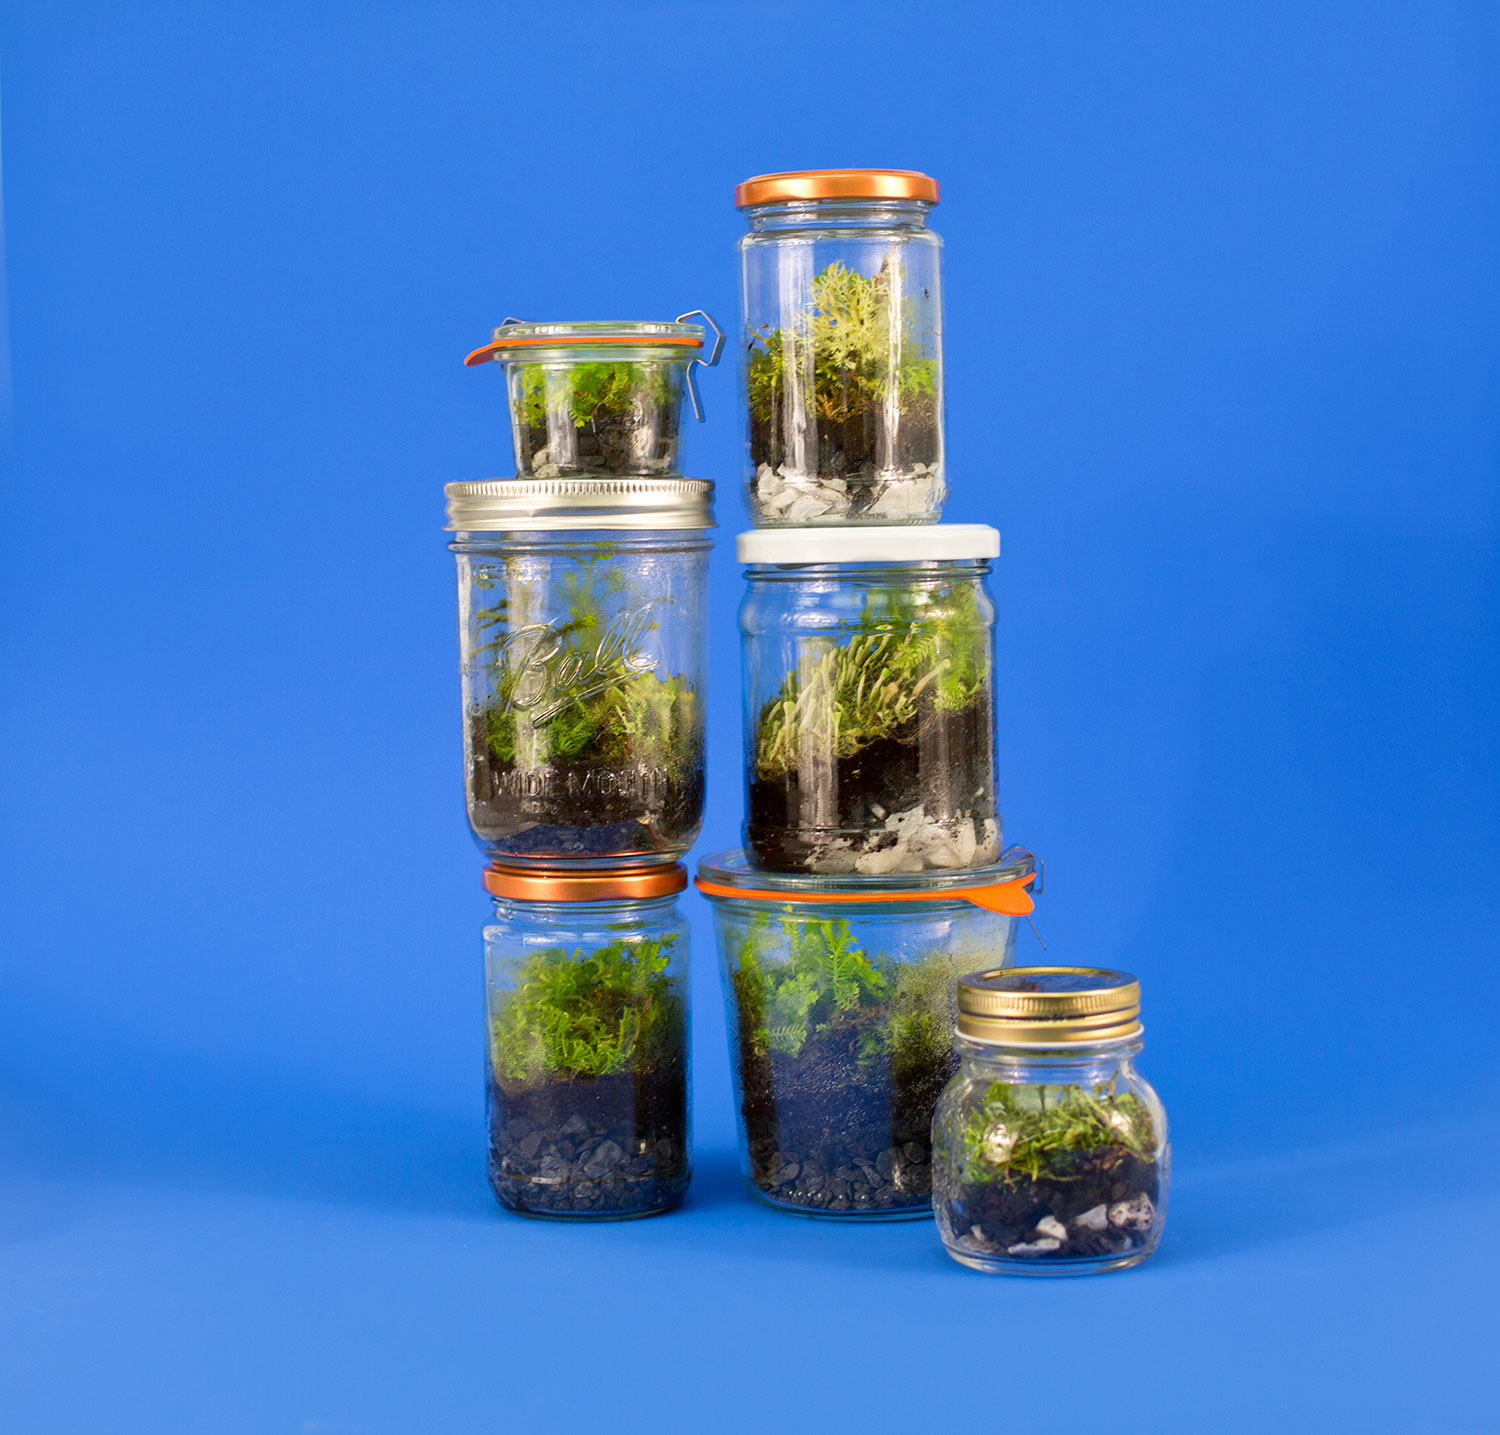 Jam Jar as a Terrarium